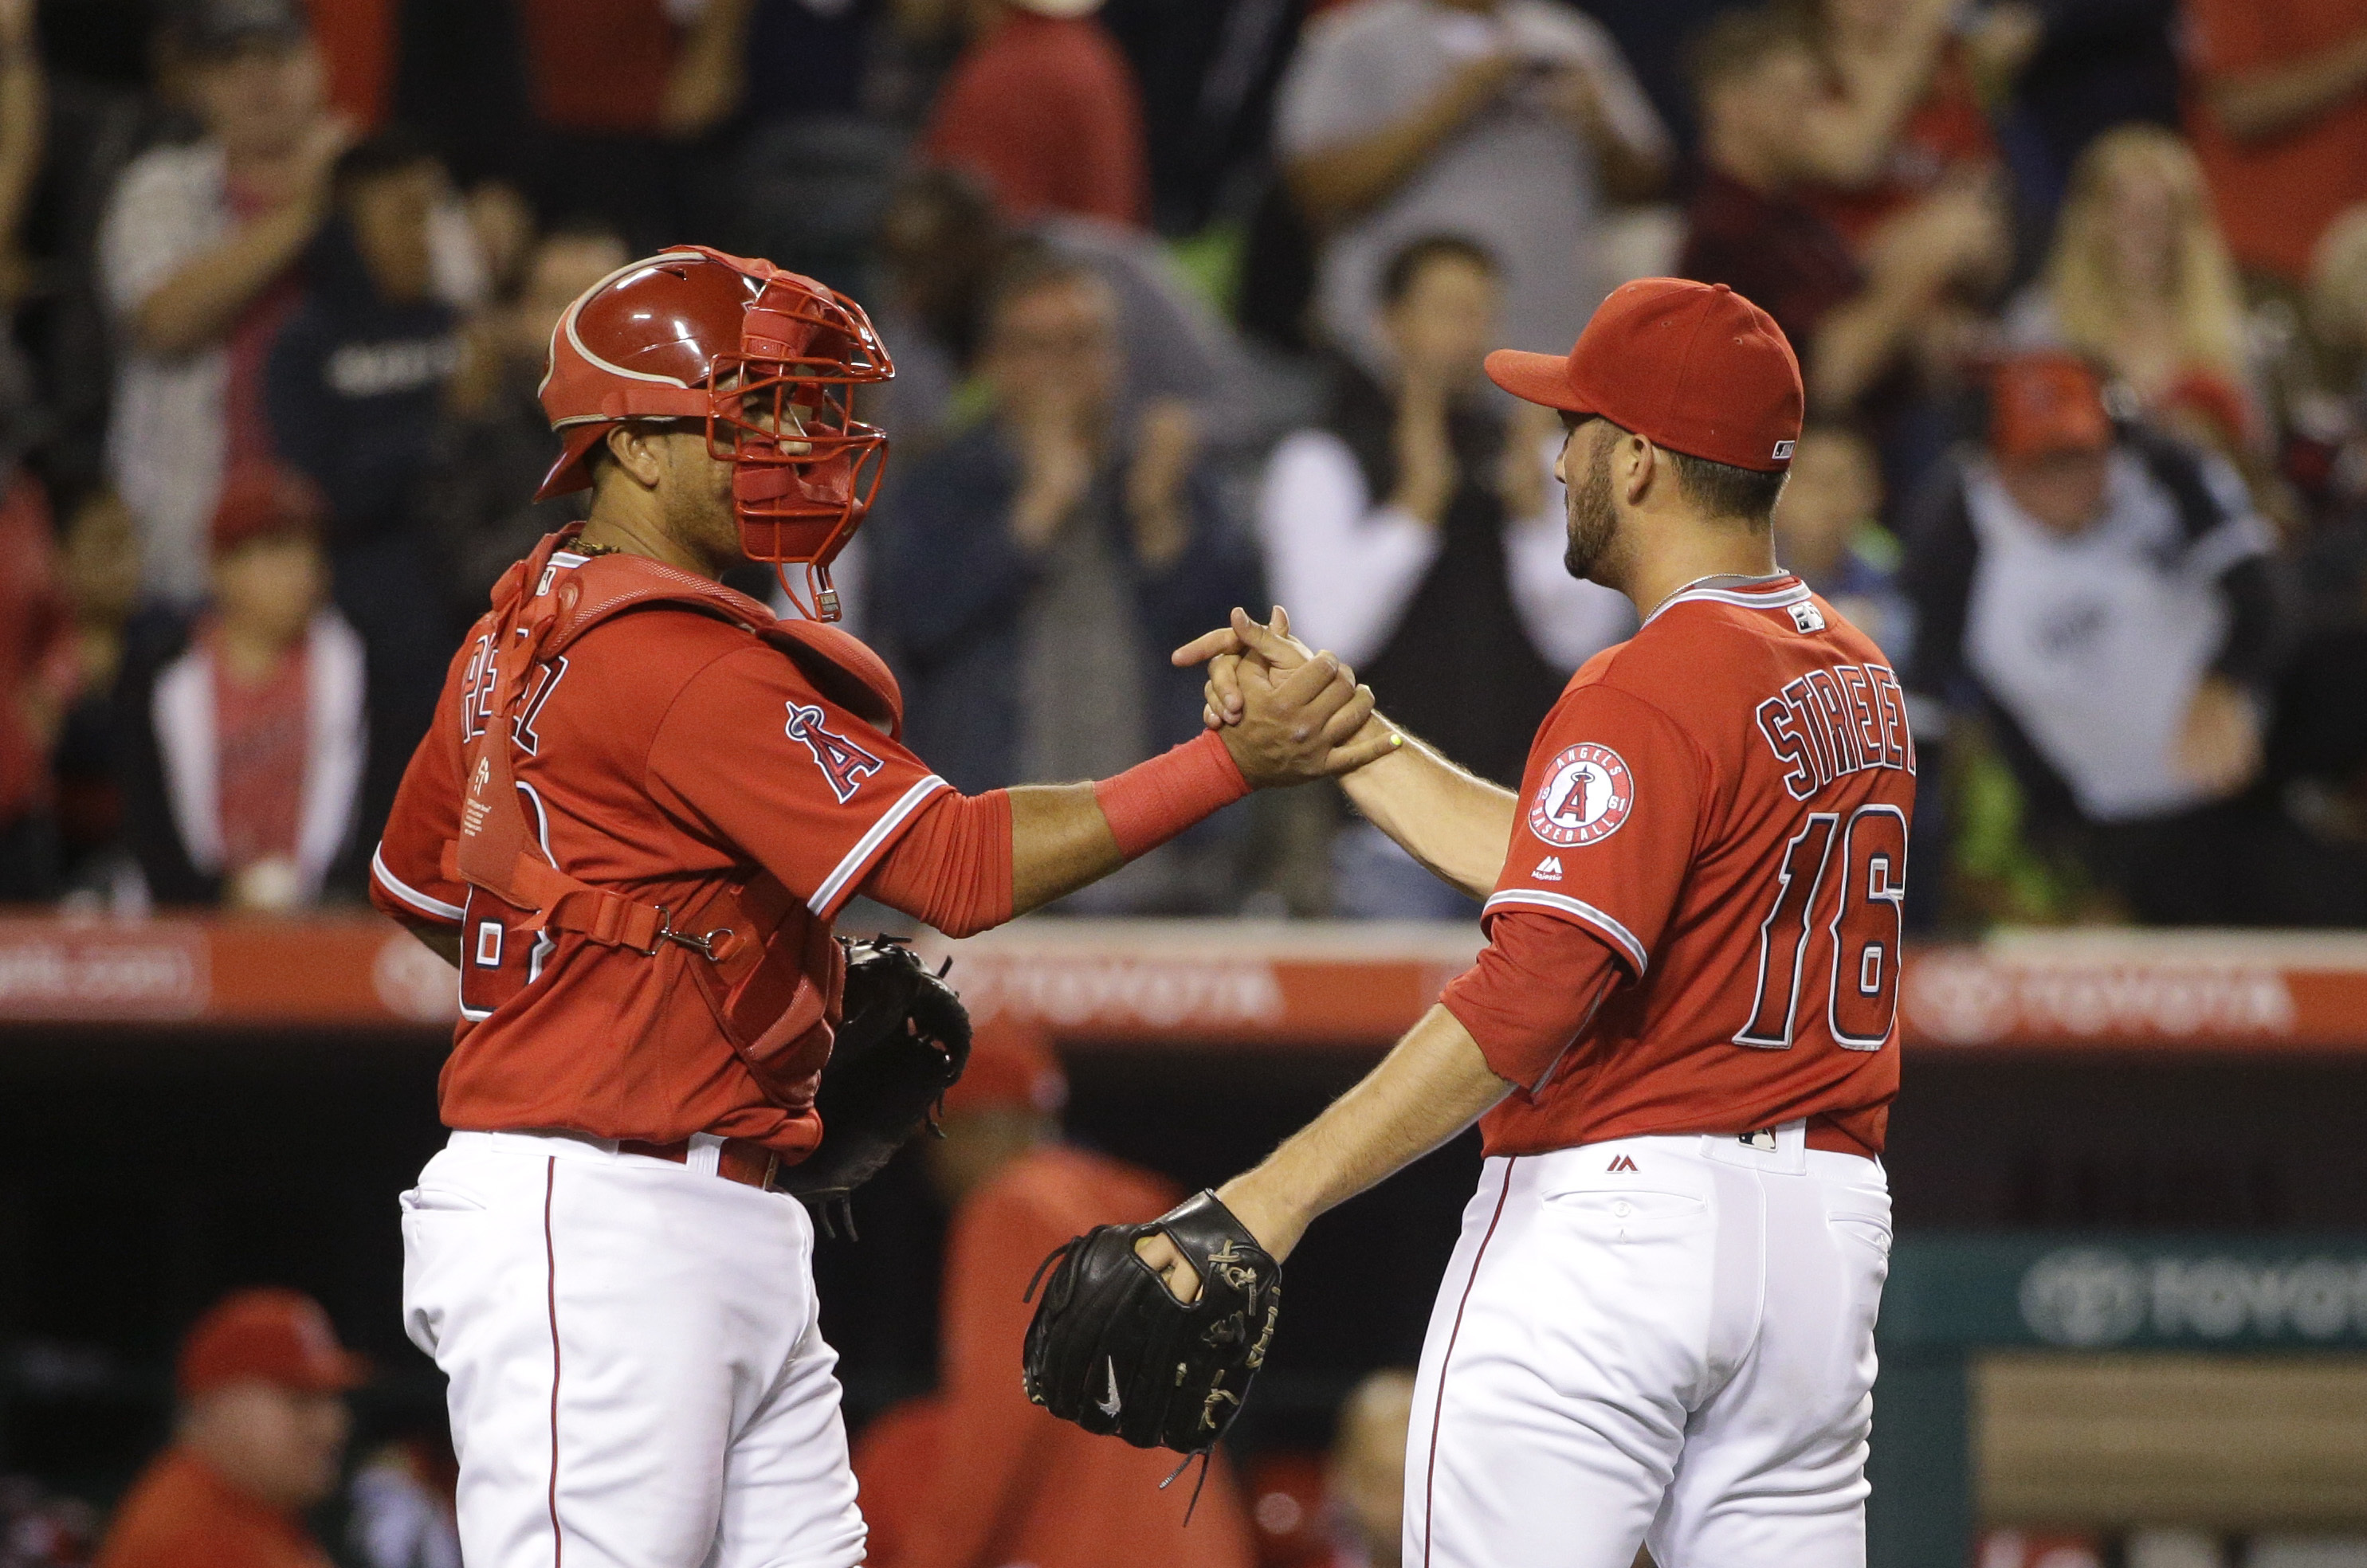 Los Angeles Angels relief pitcher Huston Street, right, and catcher Carlos Perez celebrate the team's 5-4 win against the Minnesota Twins in a baseball game,Tuesday, June 14, 2016, in Anaheim, Calif. (AP Photo/Jae C. Hong)